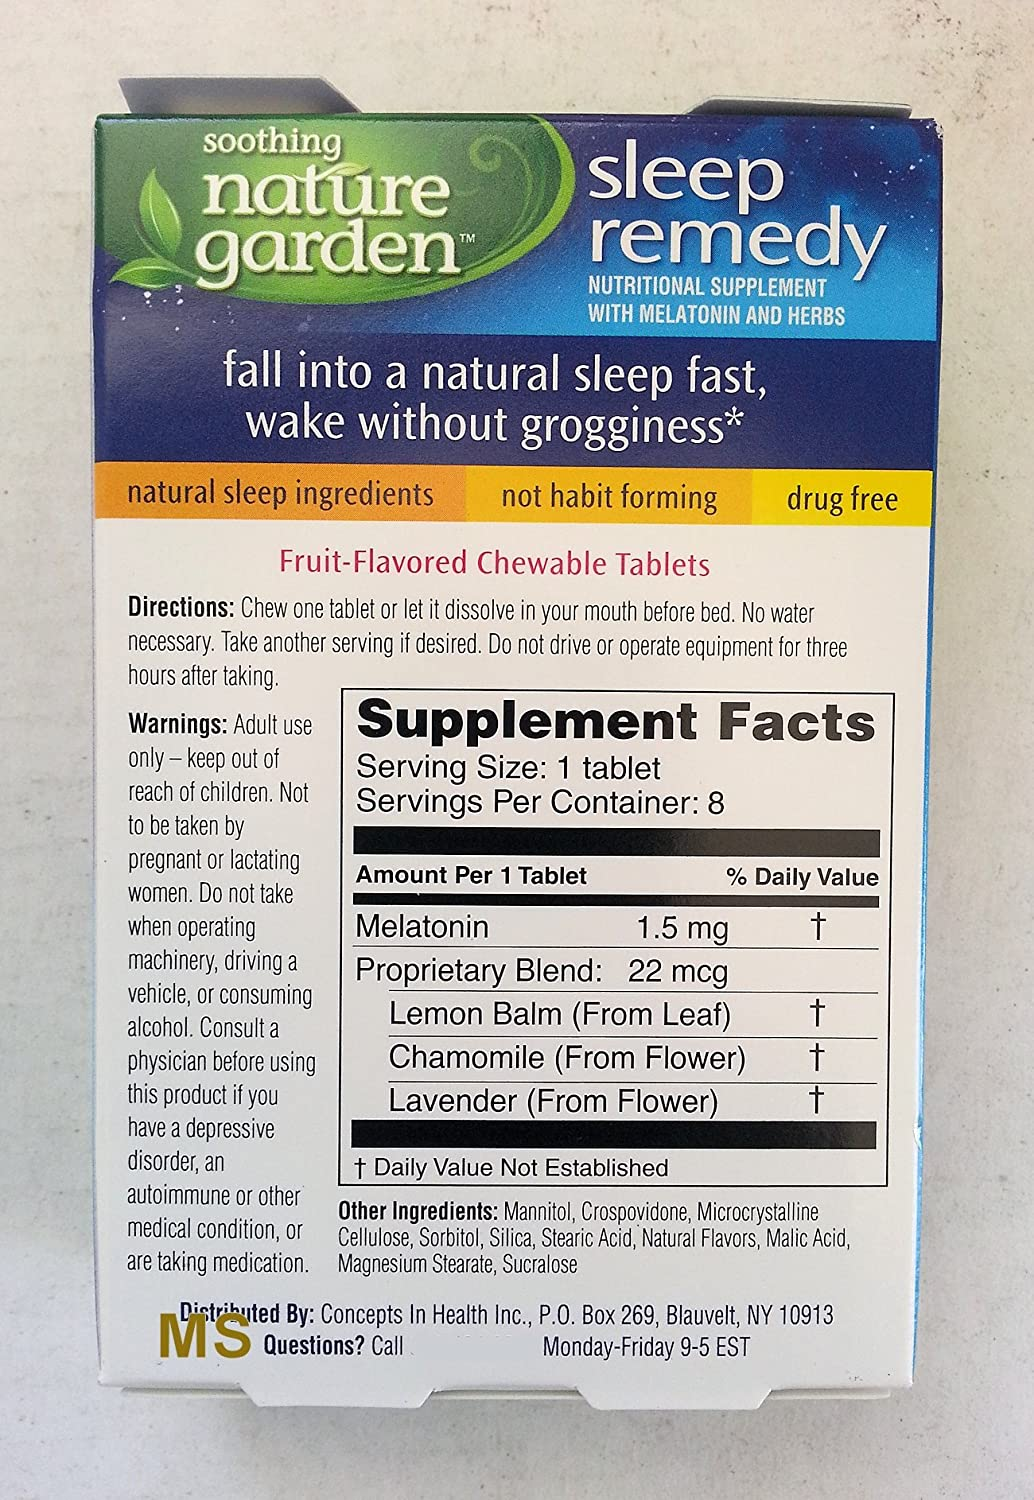 Amazon.com: Soothing Nature Garden - Sleep Remedy Fruit Flavored Chewable Tablets (Pack of 2): Health & Personal Care